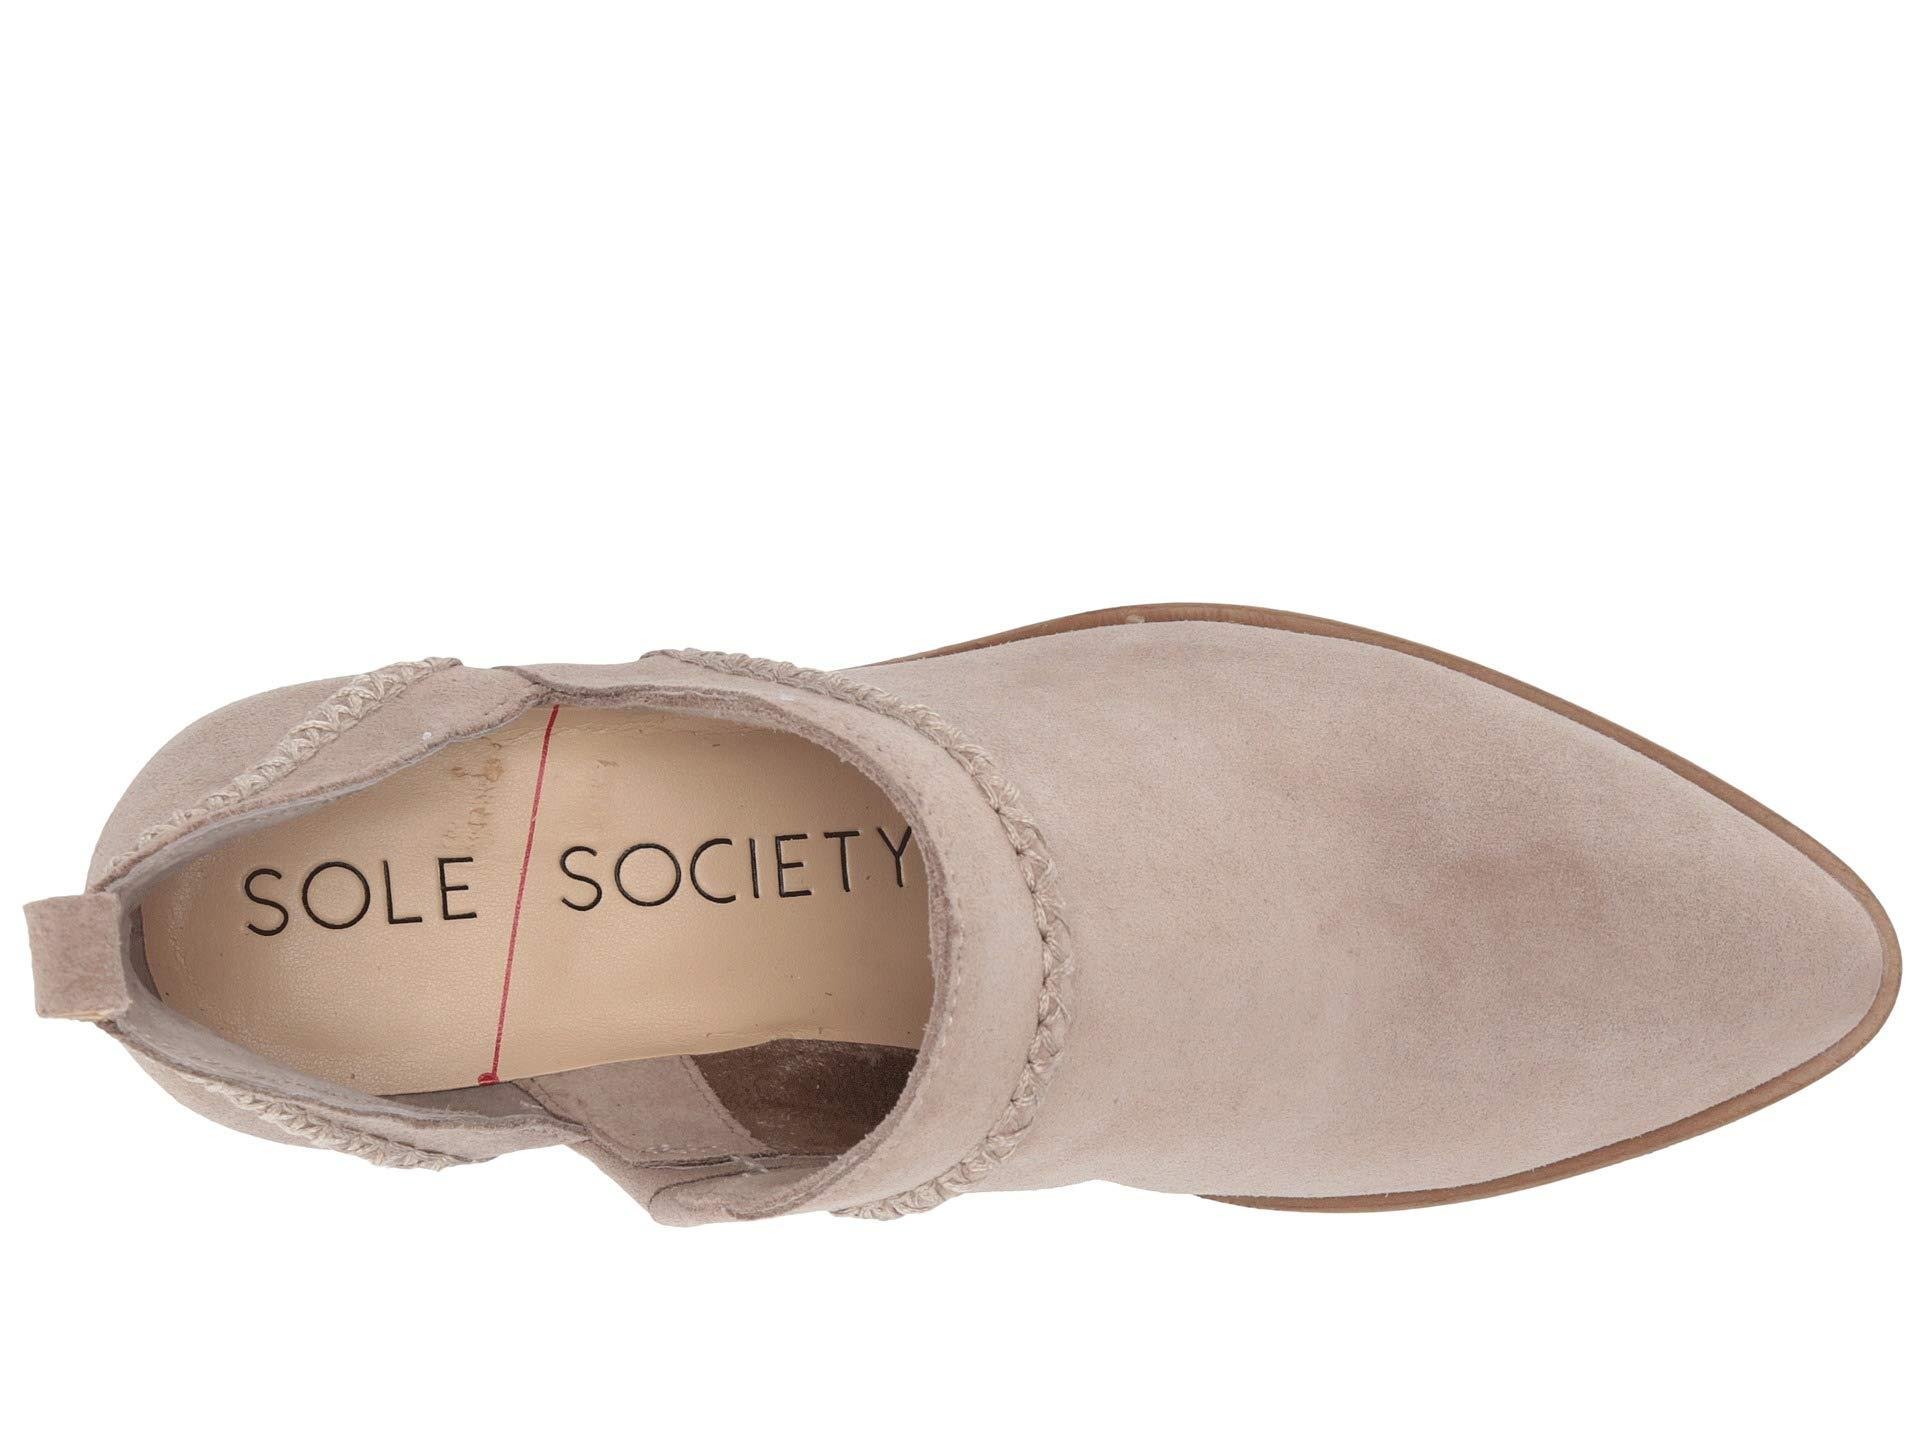 e56082335c6 Sole Society - Multicolor Nikkie (taupe) Women s Boots - Lyst. View  fullscreen